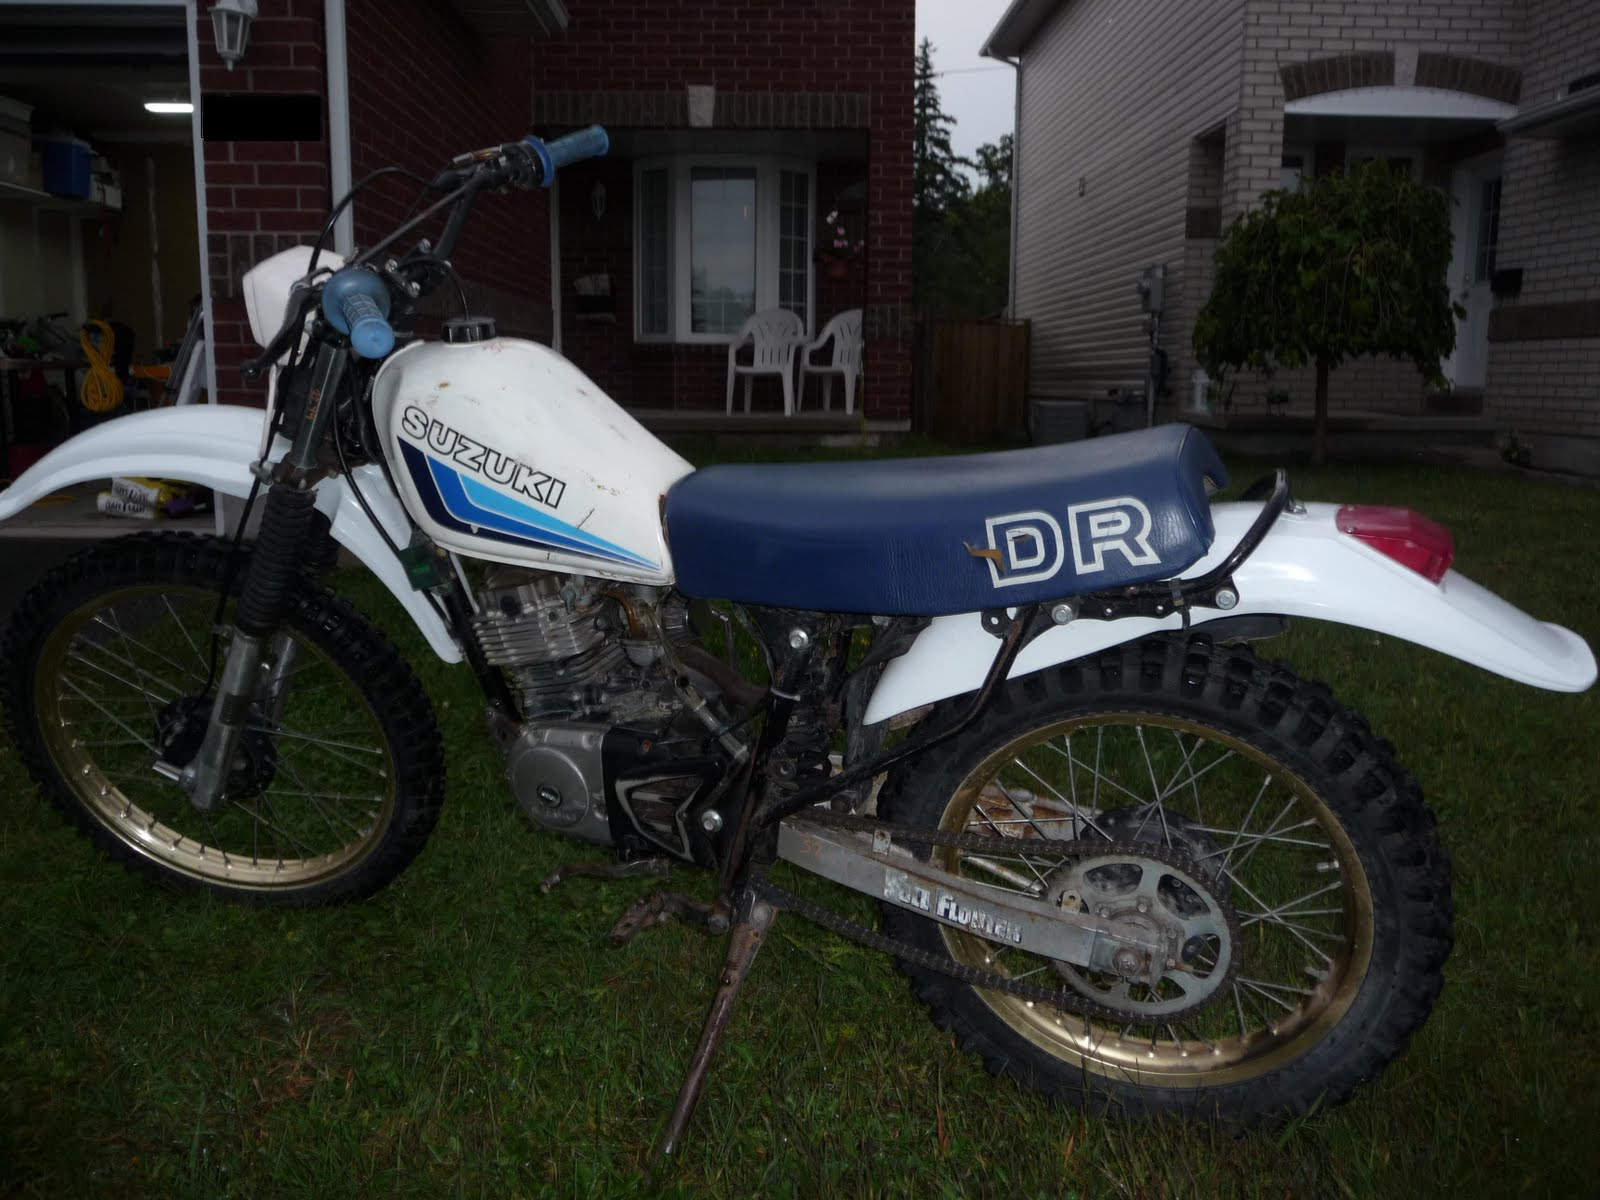 Bringing An Old Dirt Bike Back From The Past